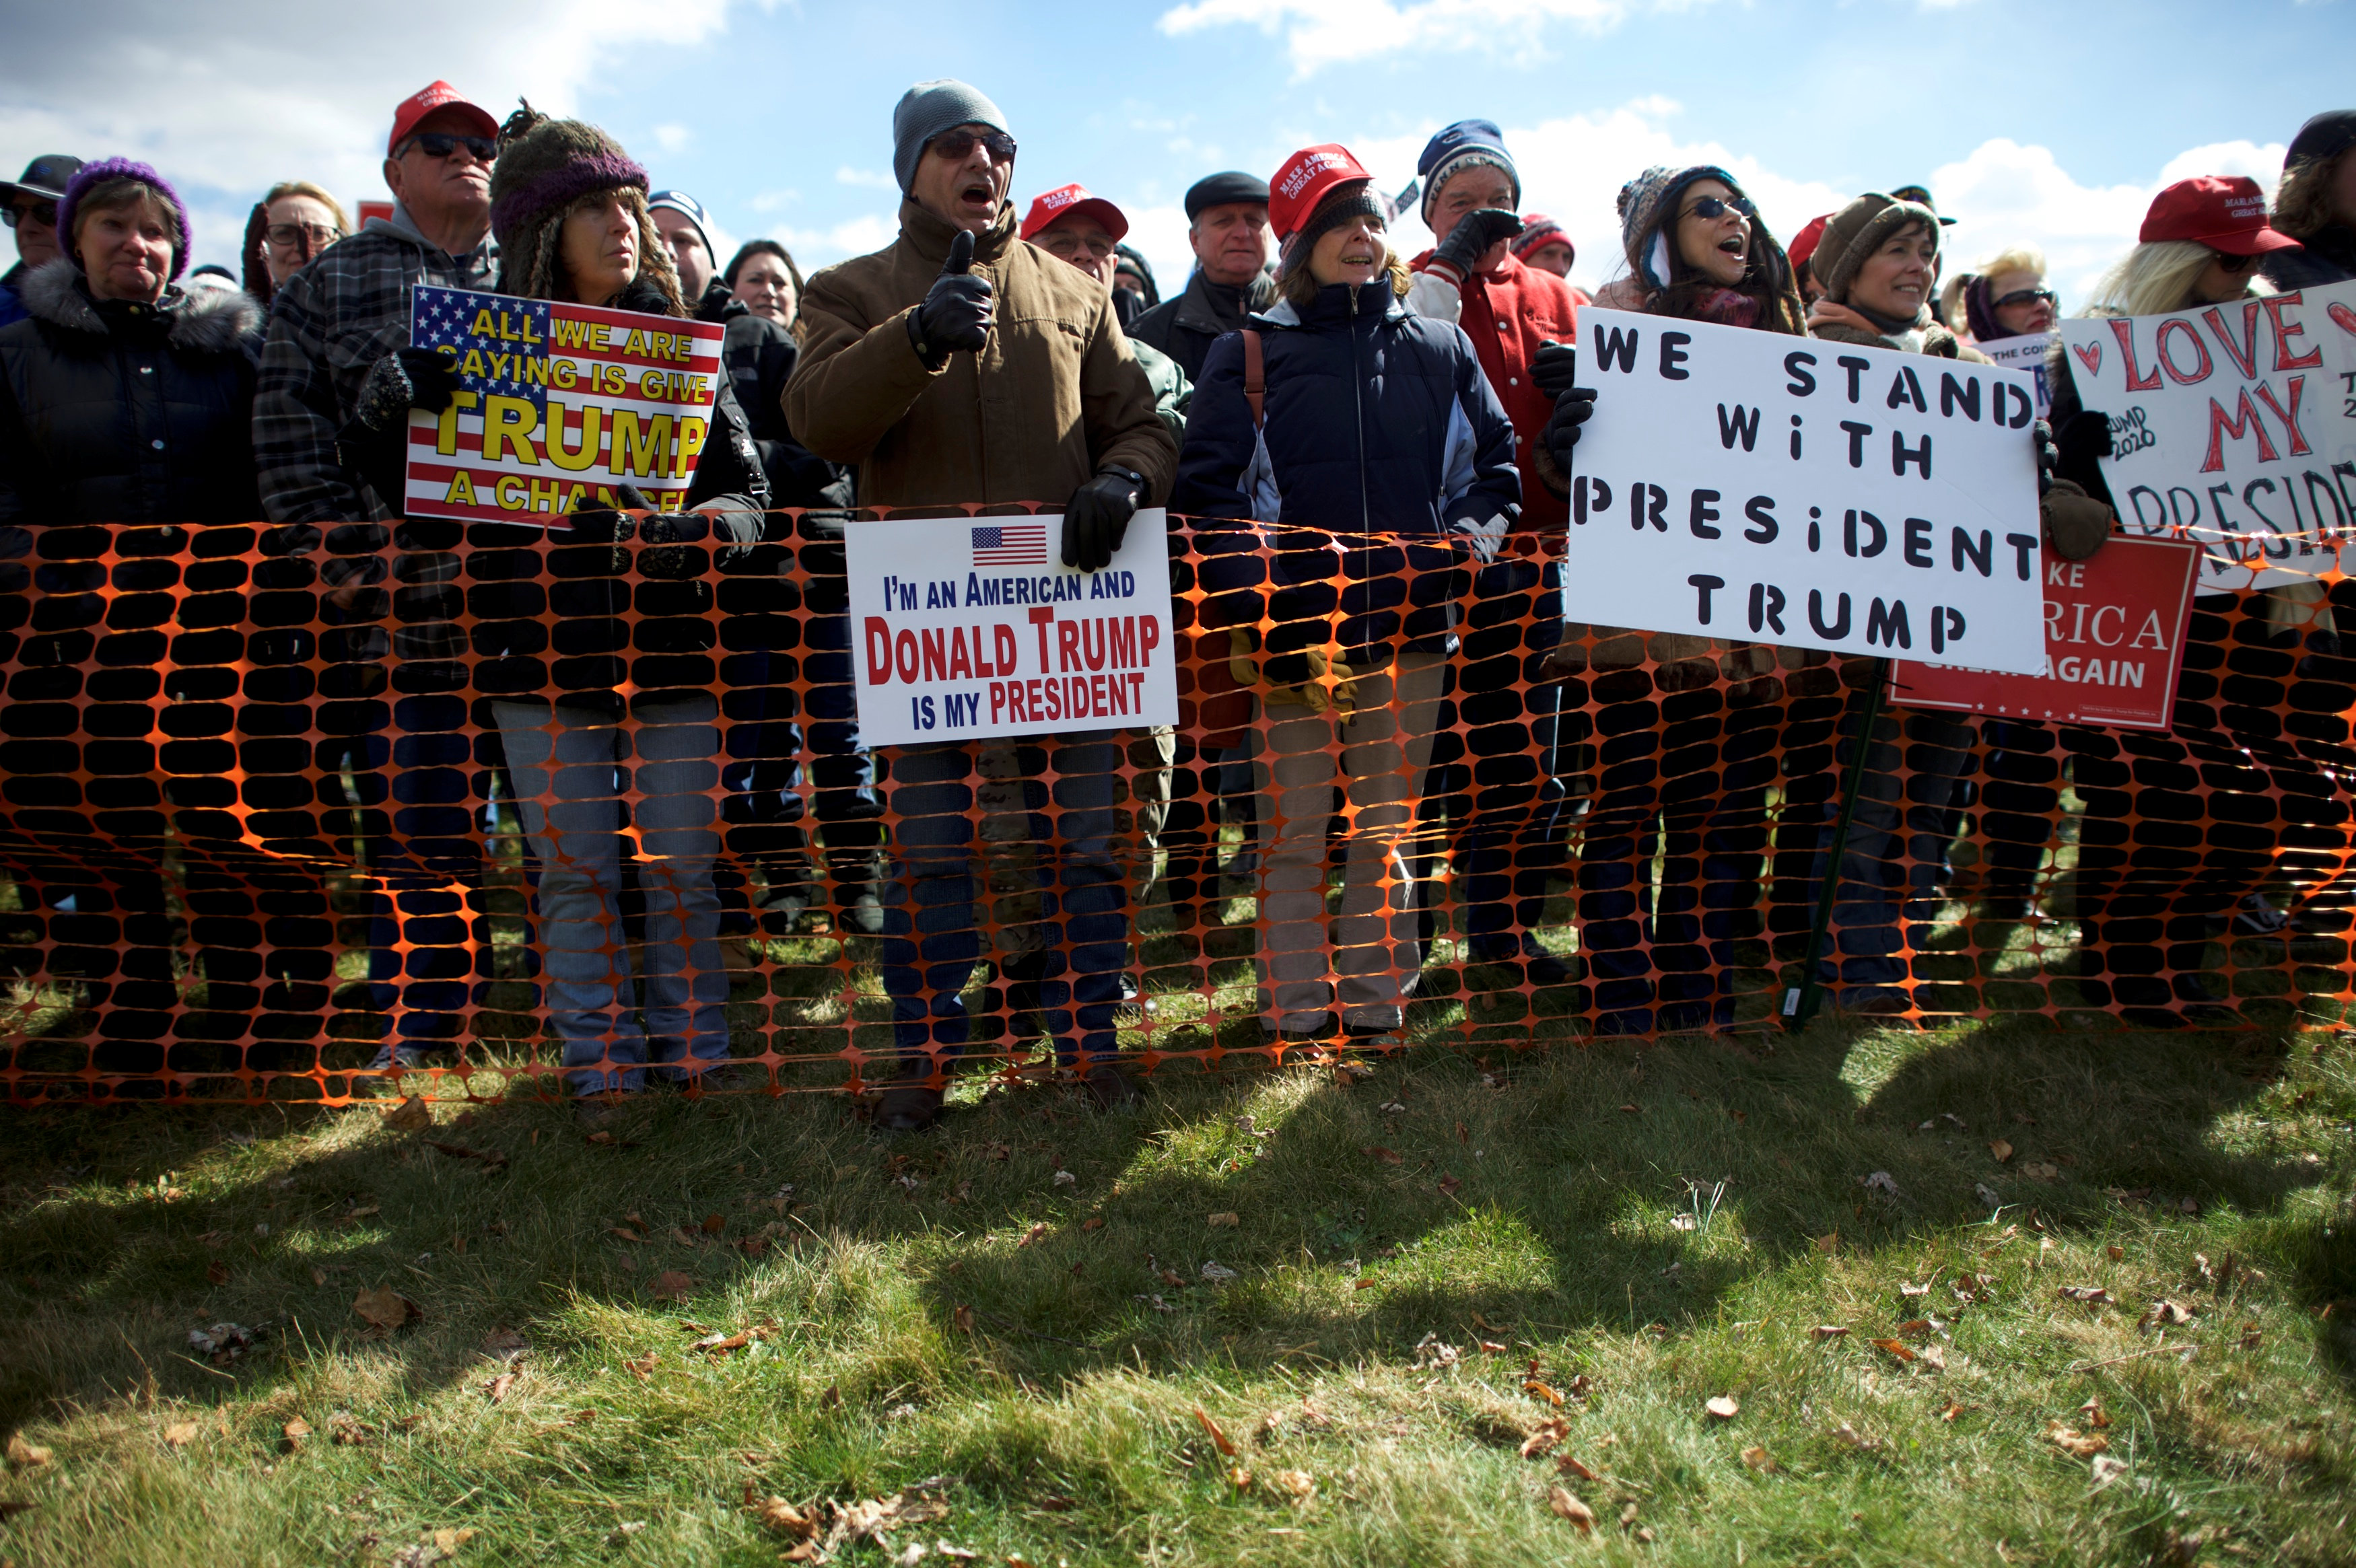 """Supporters of President Donald Trump gather for a """"People 4 Trump"""" rally at Neshaminy State Park in Bensalem, Pennsylvania, U.S. March 4, 2017. REUTERS/Mark Makela"""